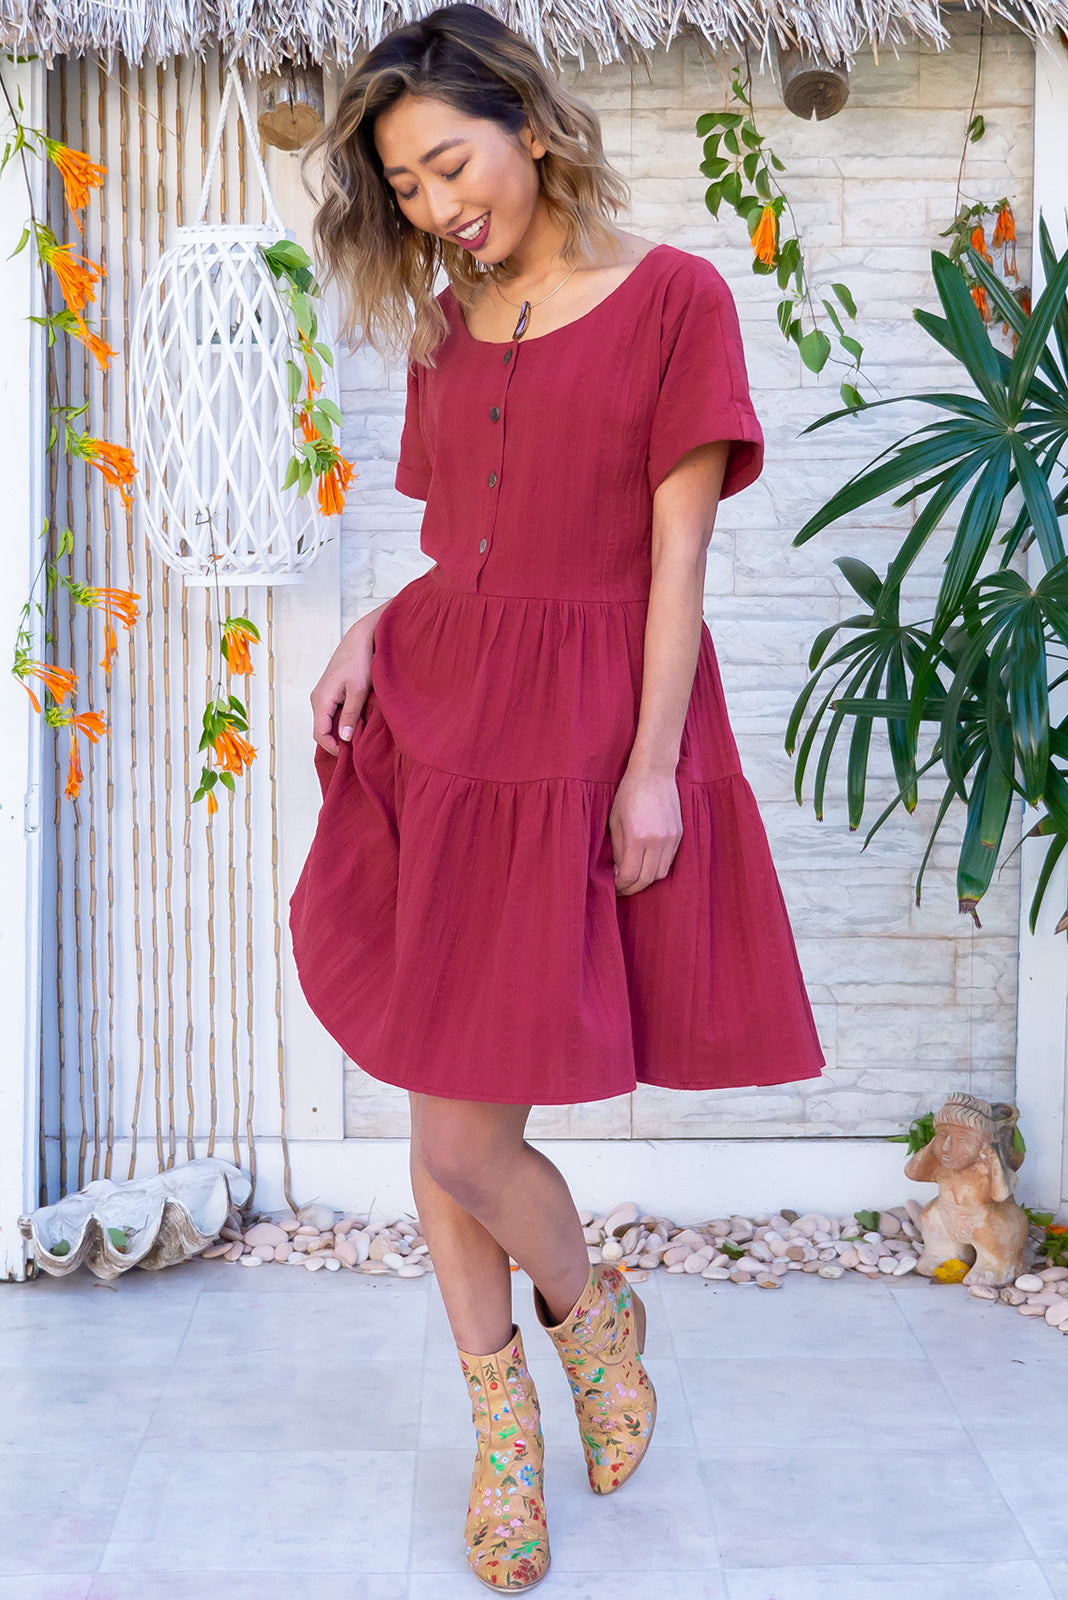 The Airlie Berry Red Mini Dress features functional button down chest to waistline, two-tiered gathered skirt, adjustable button plackets at back to cinch waist, side pockets and woven 100% cotton in Wine red colour.